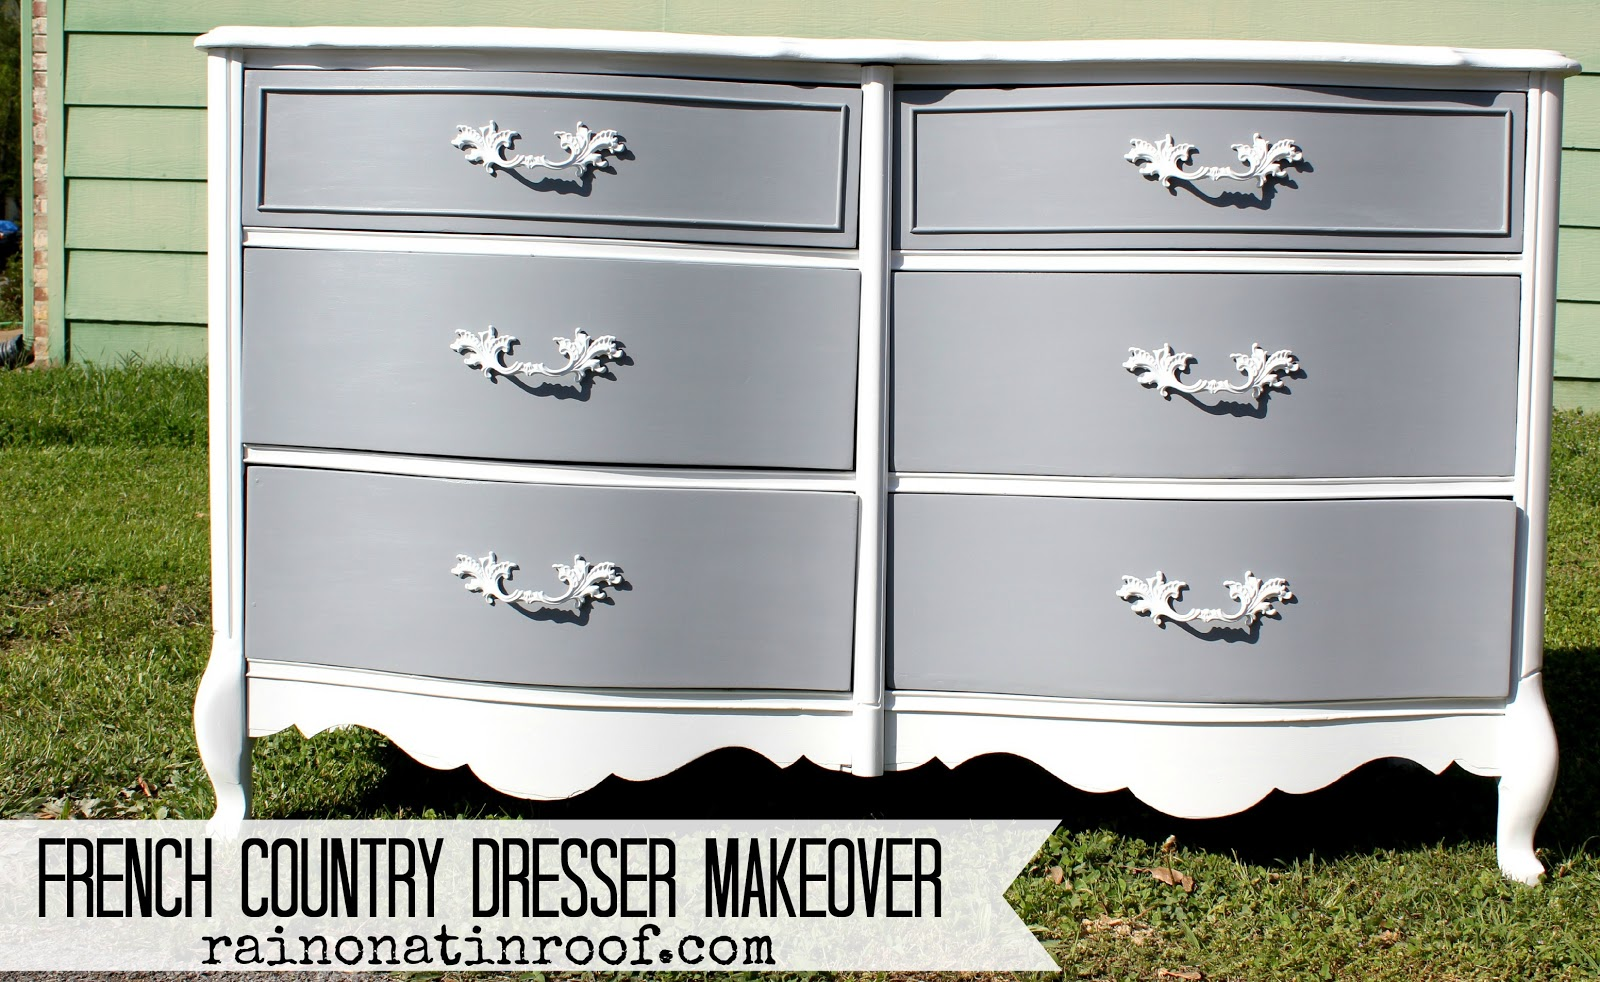 French Country Dresser Makeover With Homemade Chalk Paint  {rainonatinroof.com} #frenchcountry #